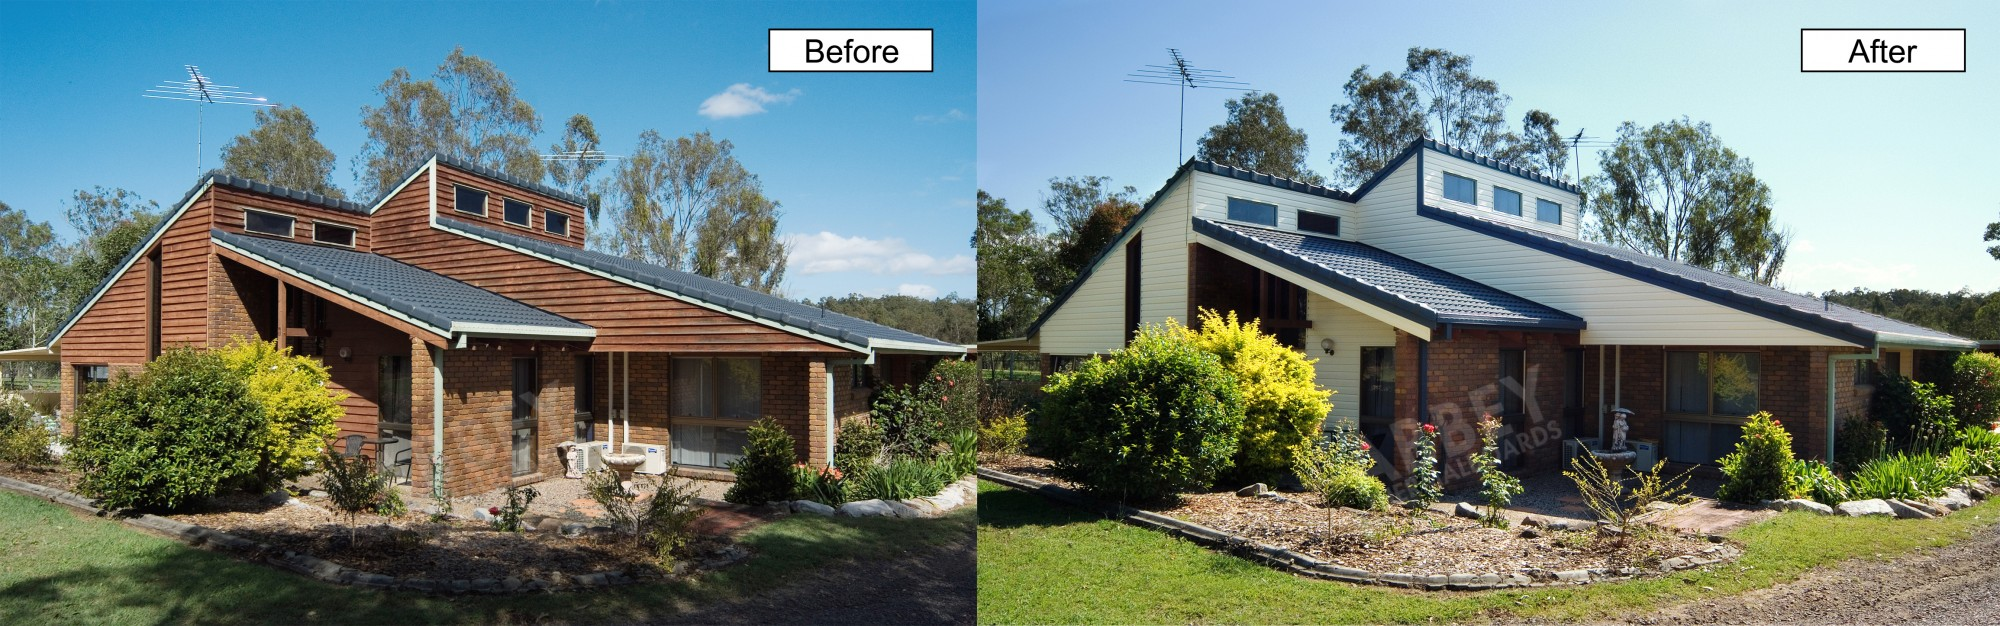 Cladding before and after shots of a home completed by Abbey Thermalboards.